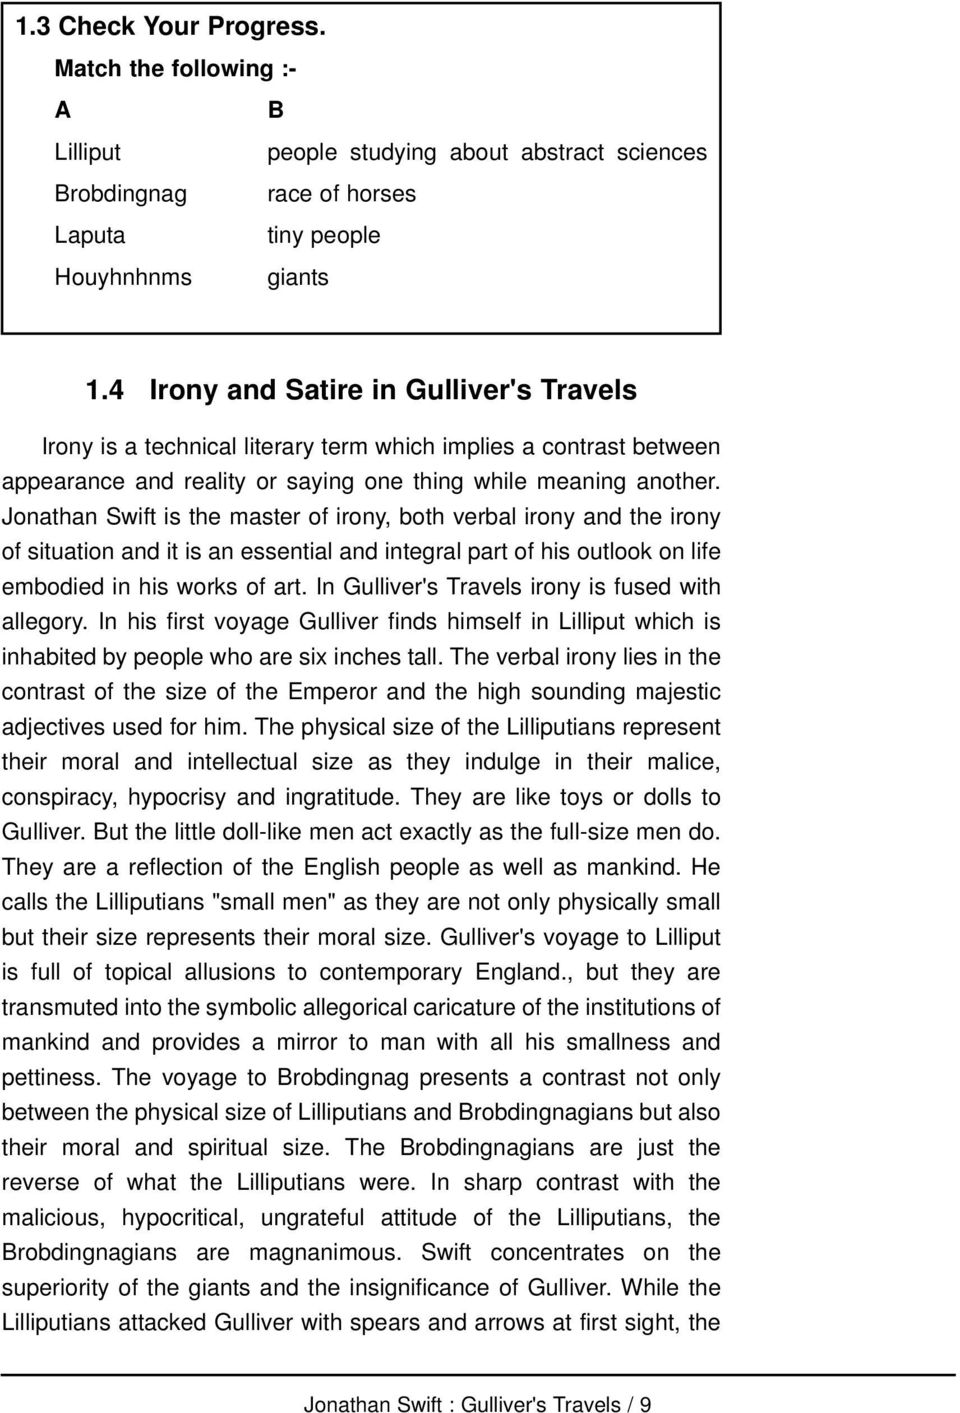 gullivers travels summary every chapter